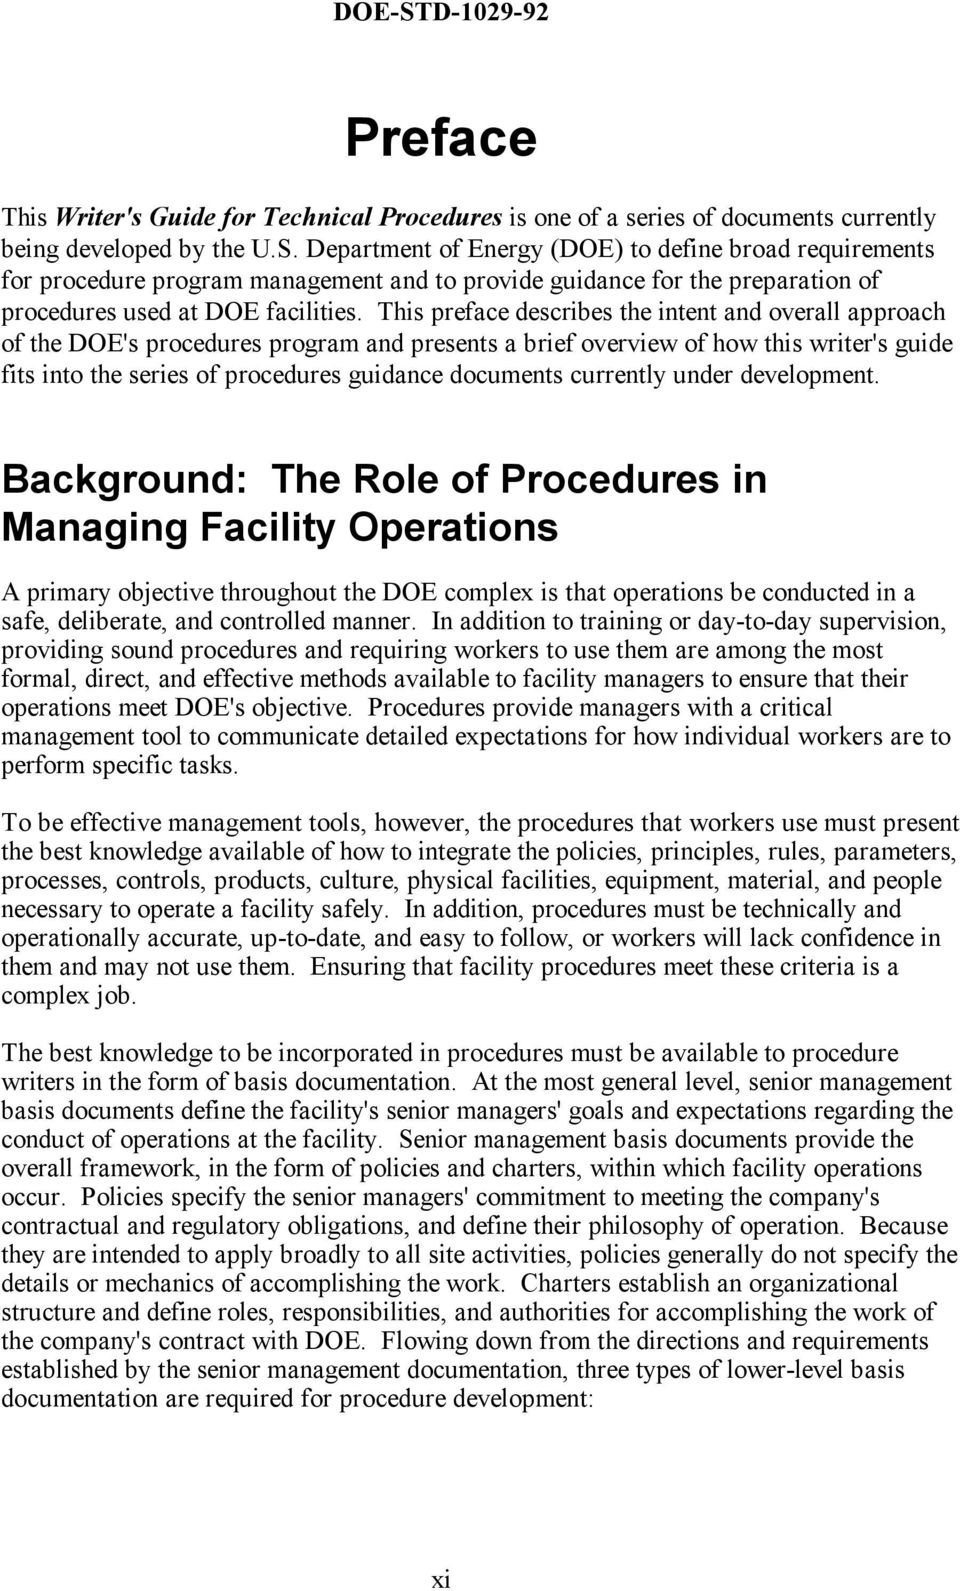 This preface describes the intent and overall approach of the DOE's procedures program and presents a brief overview of how this writer's guide fits into the series of procedures guidance documents